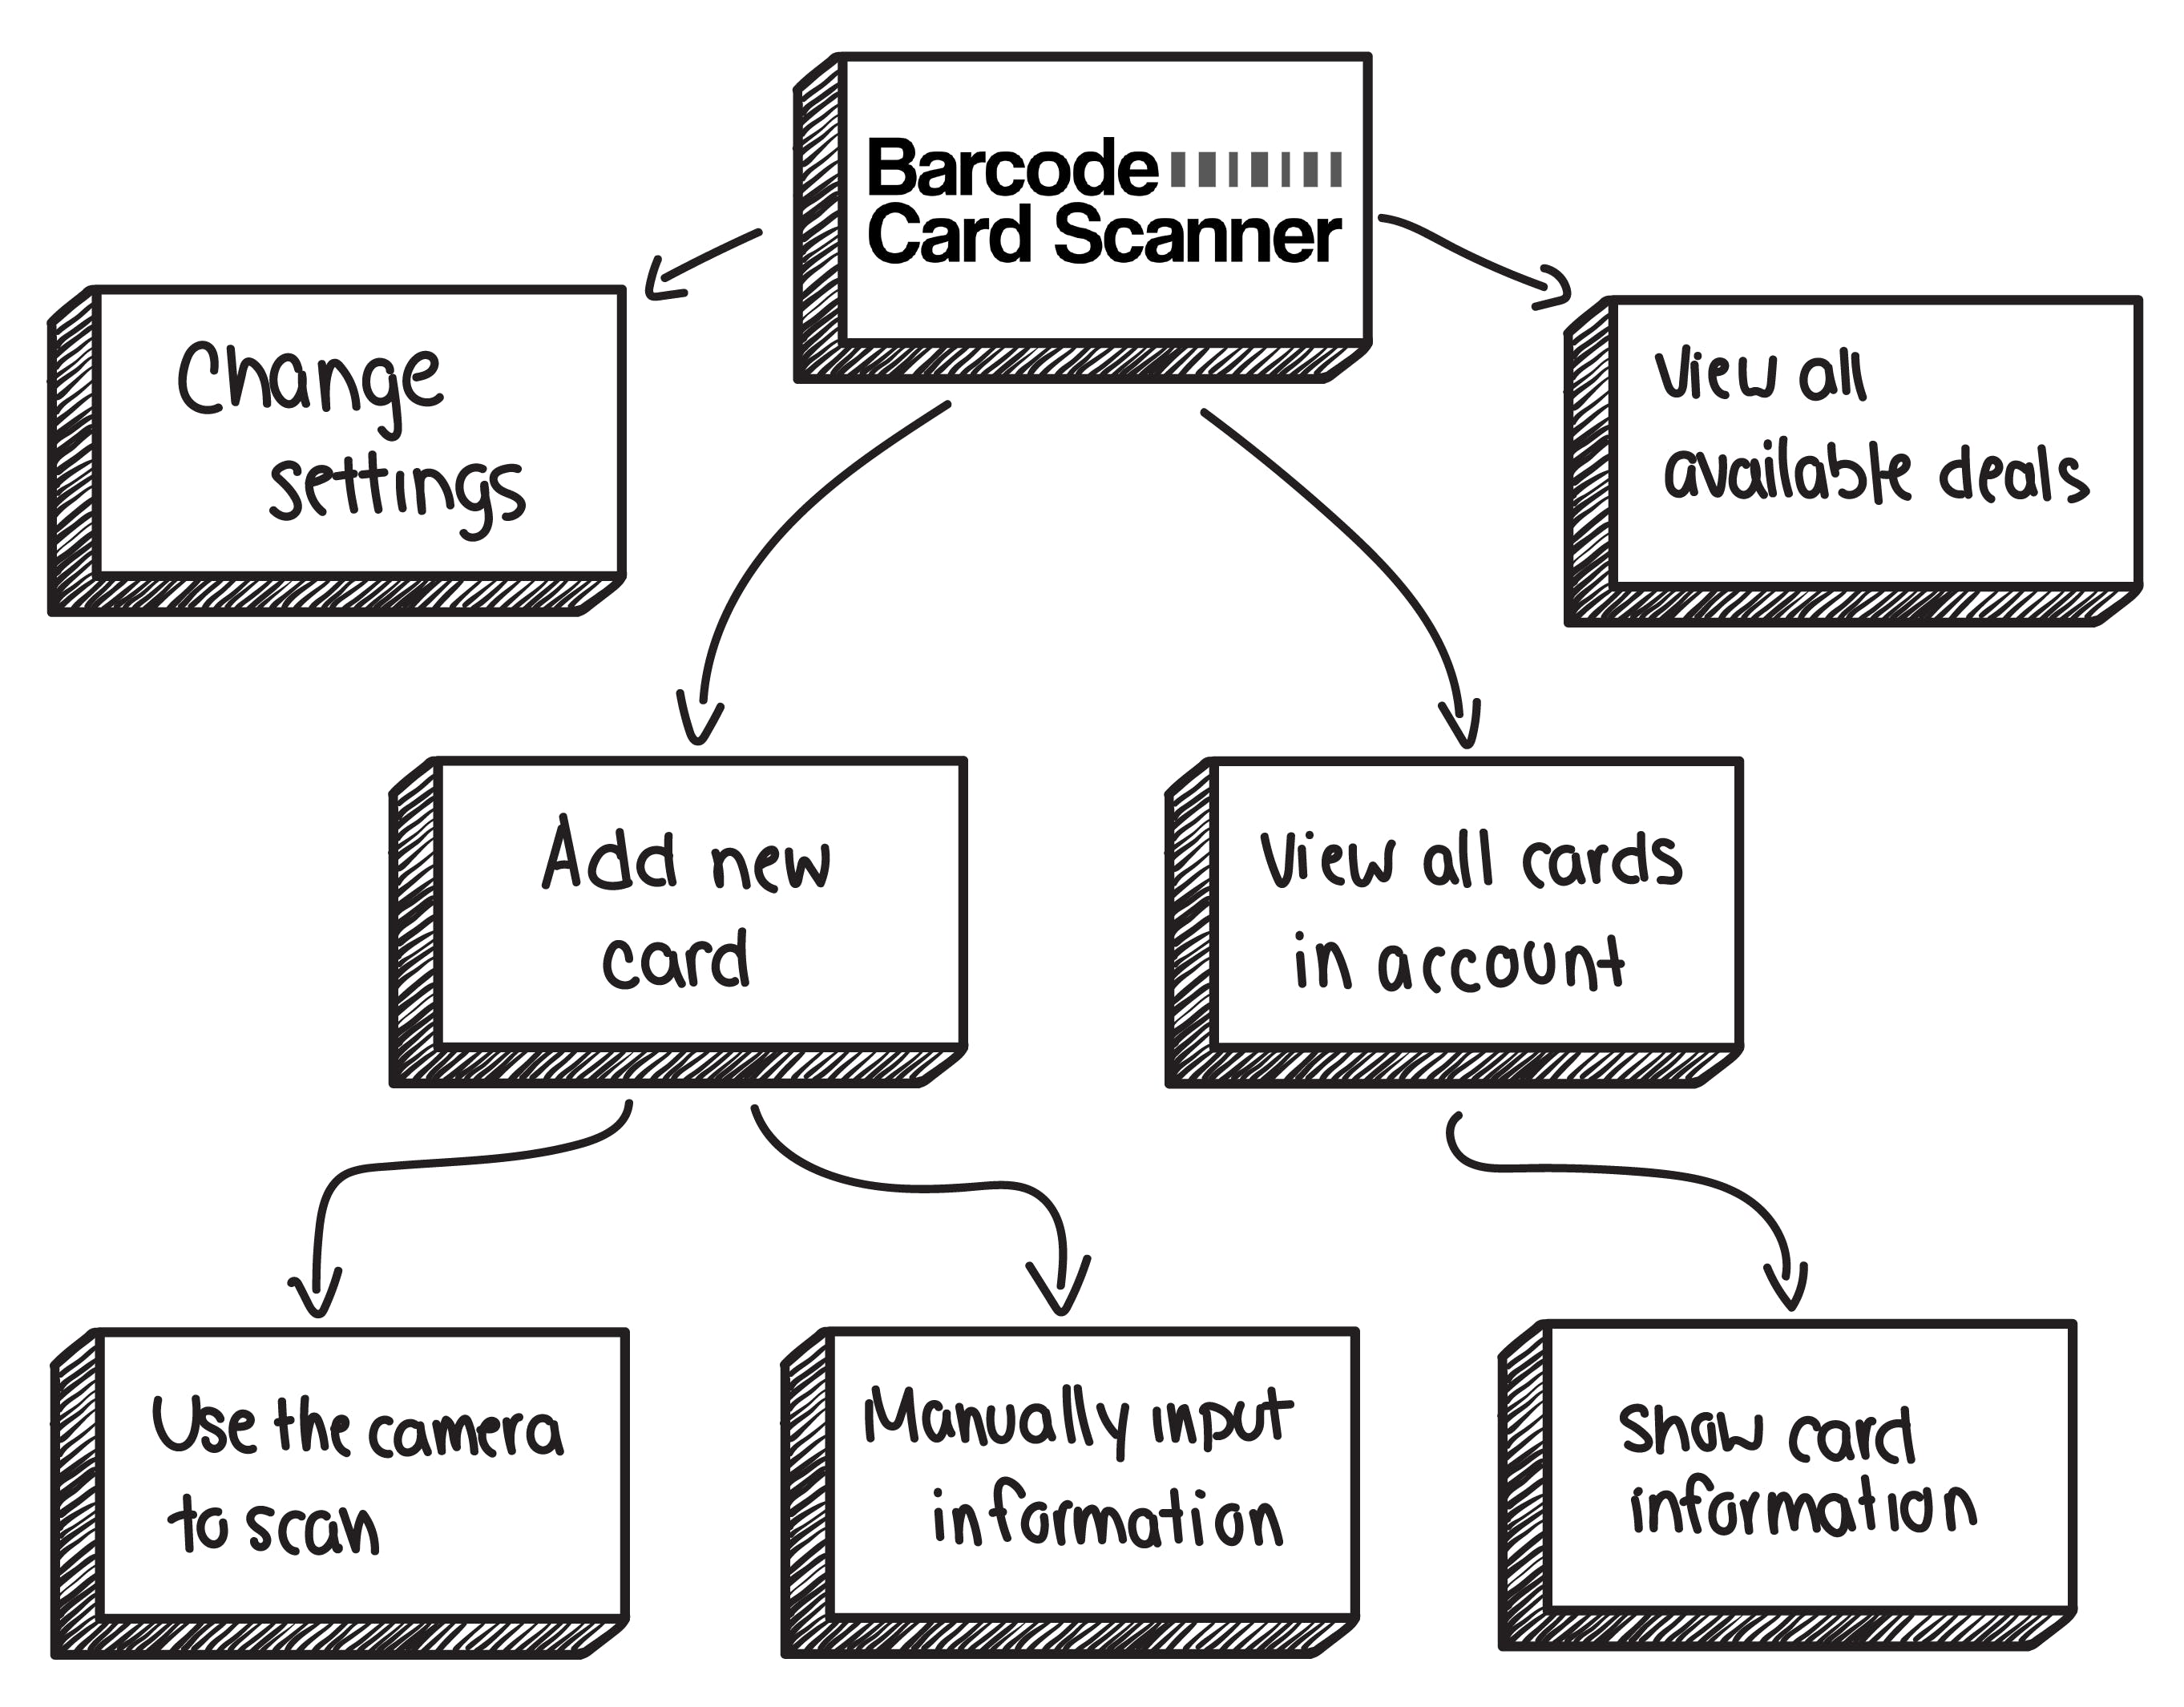 Barcode Card Scanner